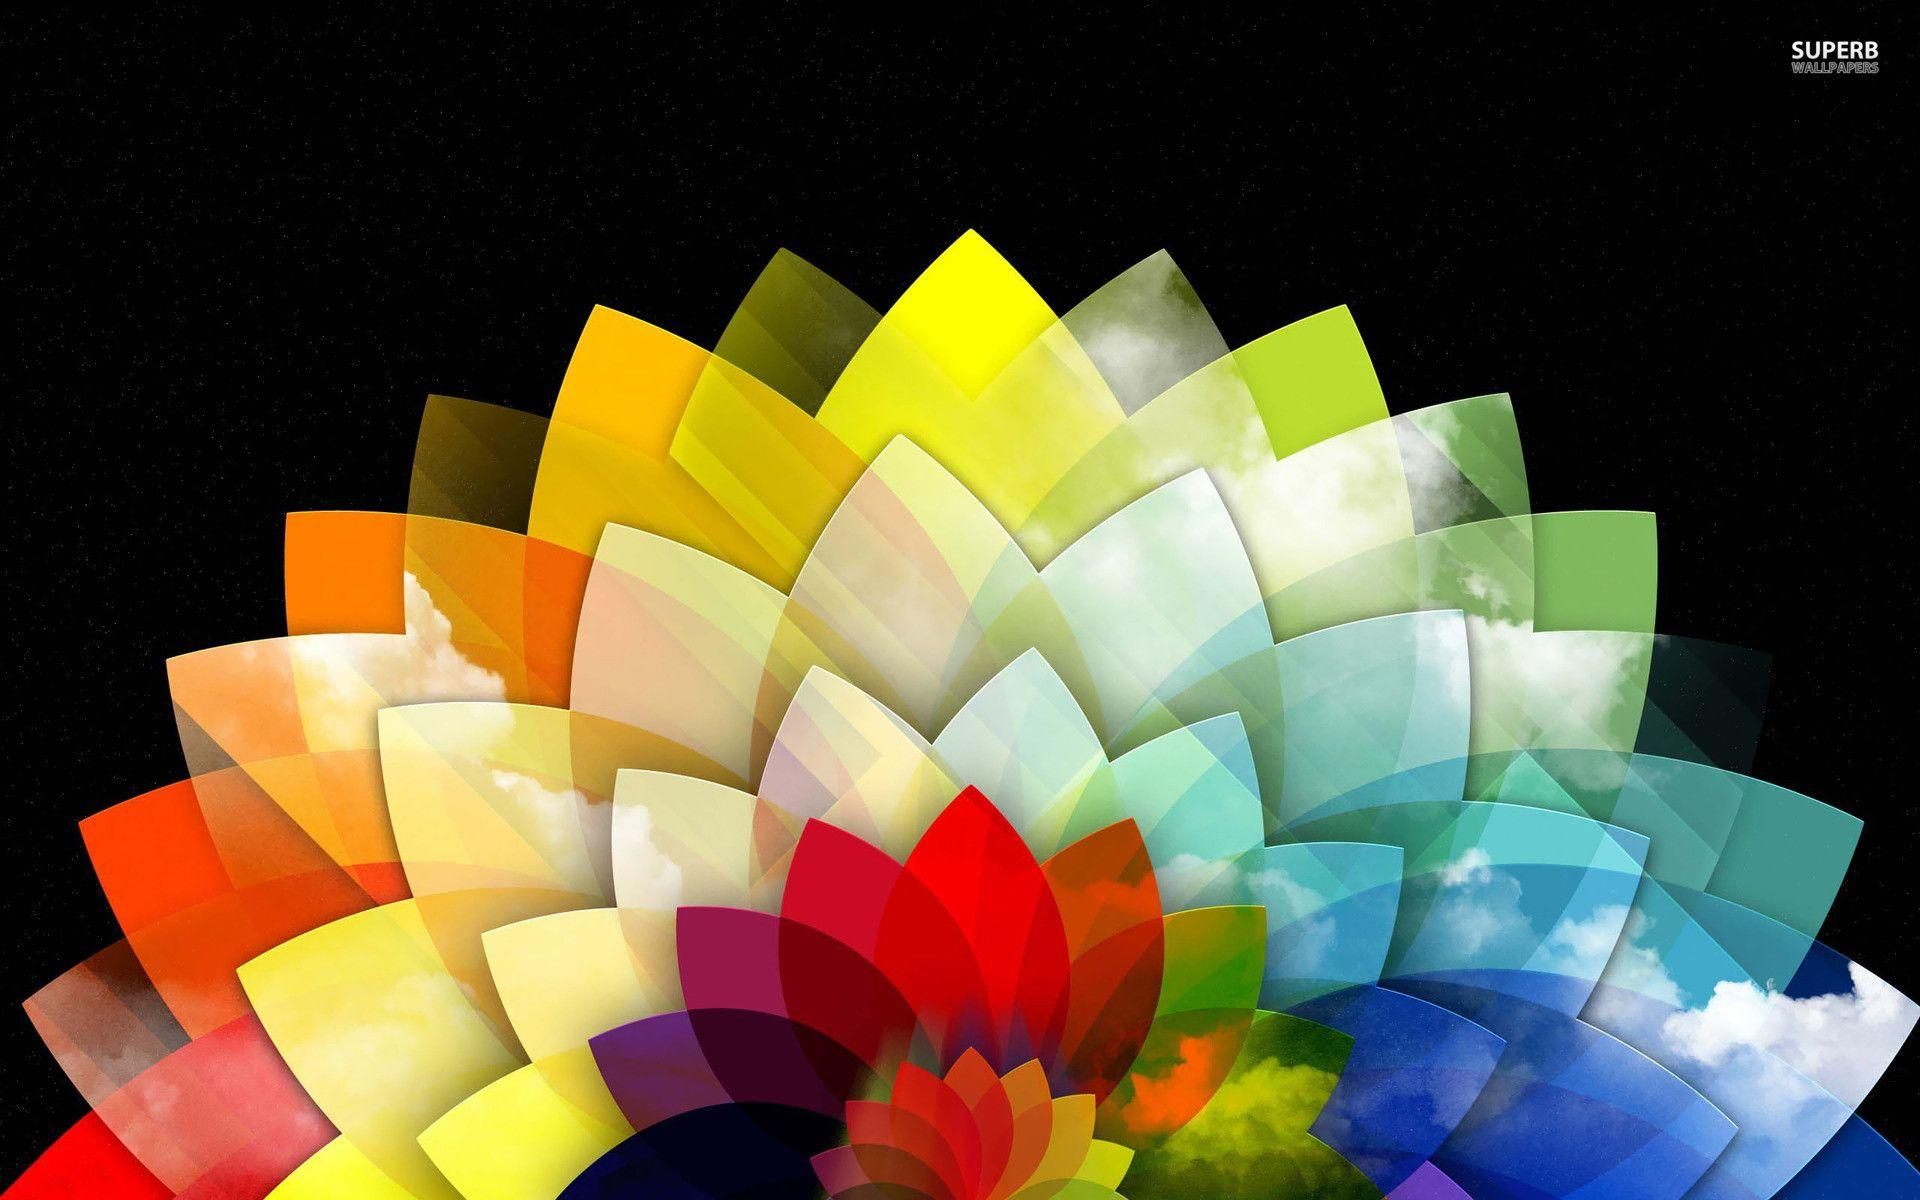 Free Colorful Flower Wallpaper Downloads: Colorful Flower Wallpapers